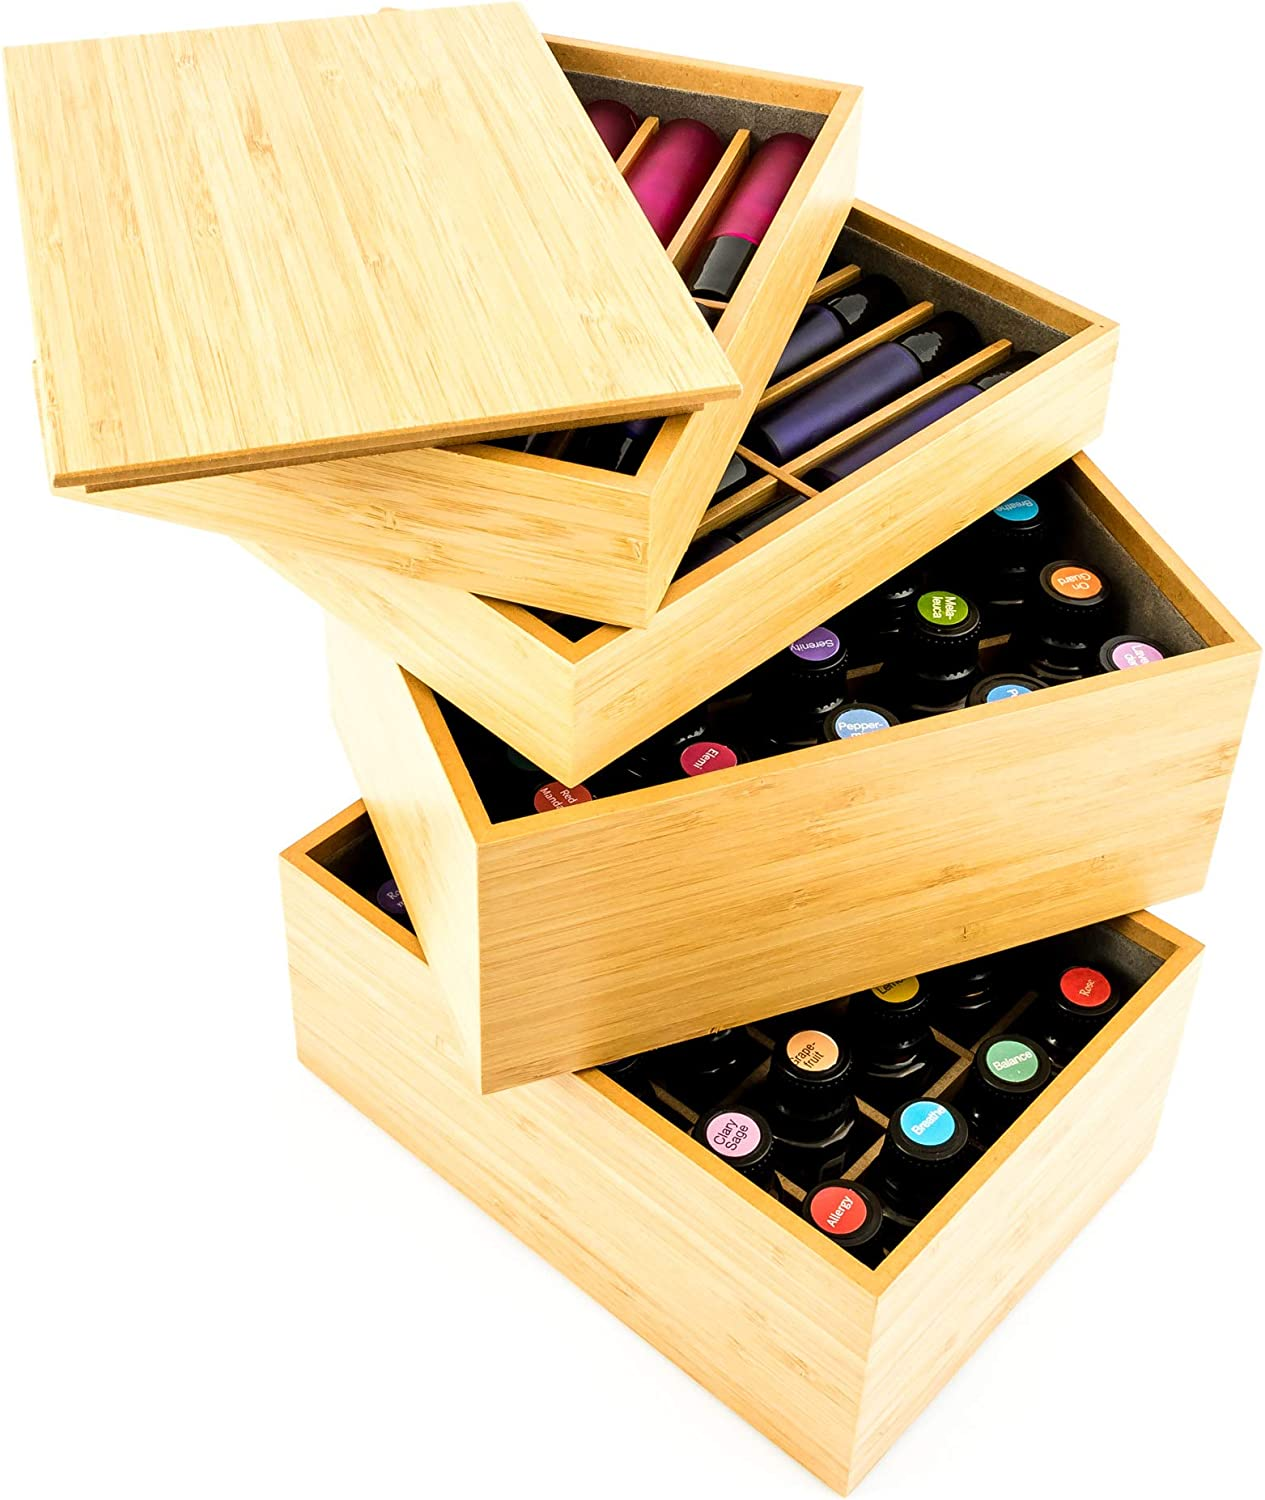 Large Essential Oil Storage Box Wooden Case Aromatherapy Oils Organizer Holder For Keeping Your Oils Safe Holds 5-10-15-30ml Bottles 4 Sizes 10 Grids